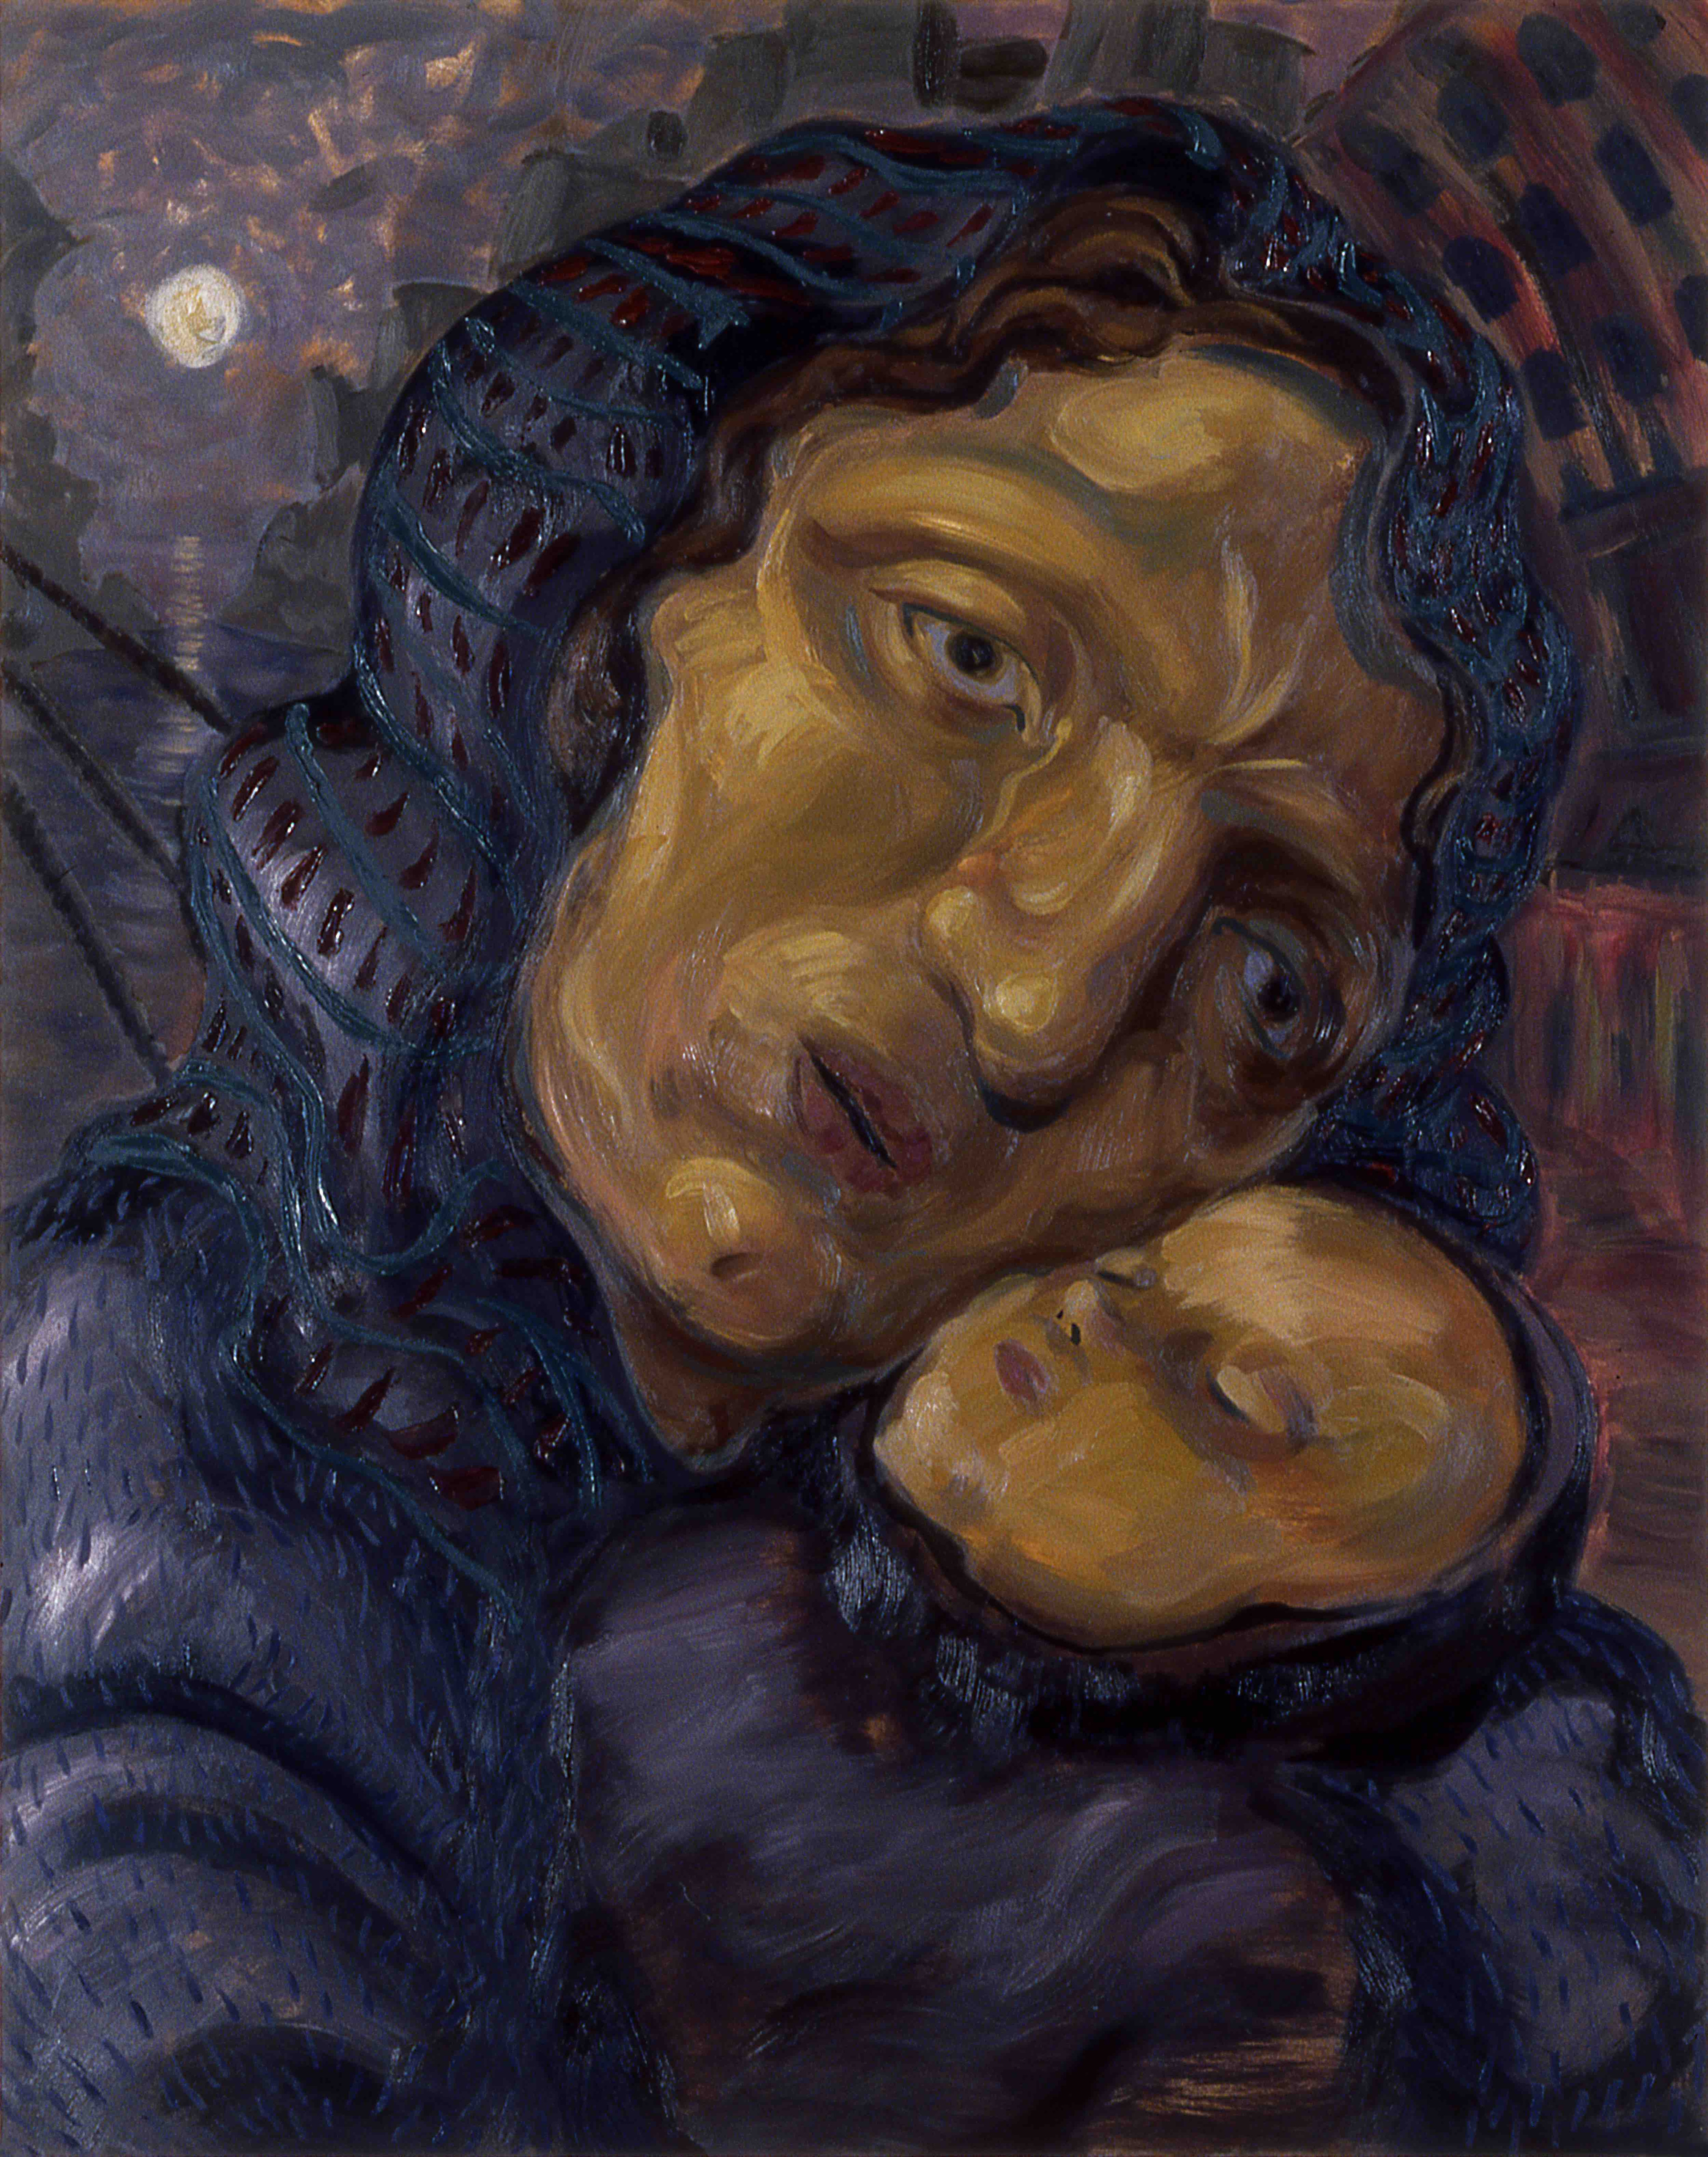 THE IMMIGRANT, painted by Vince Mancuso in 1990, oil on canvas 4x5 feet. Available